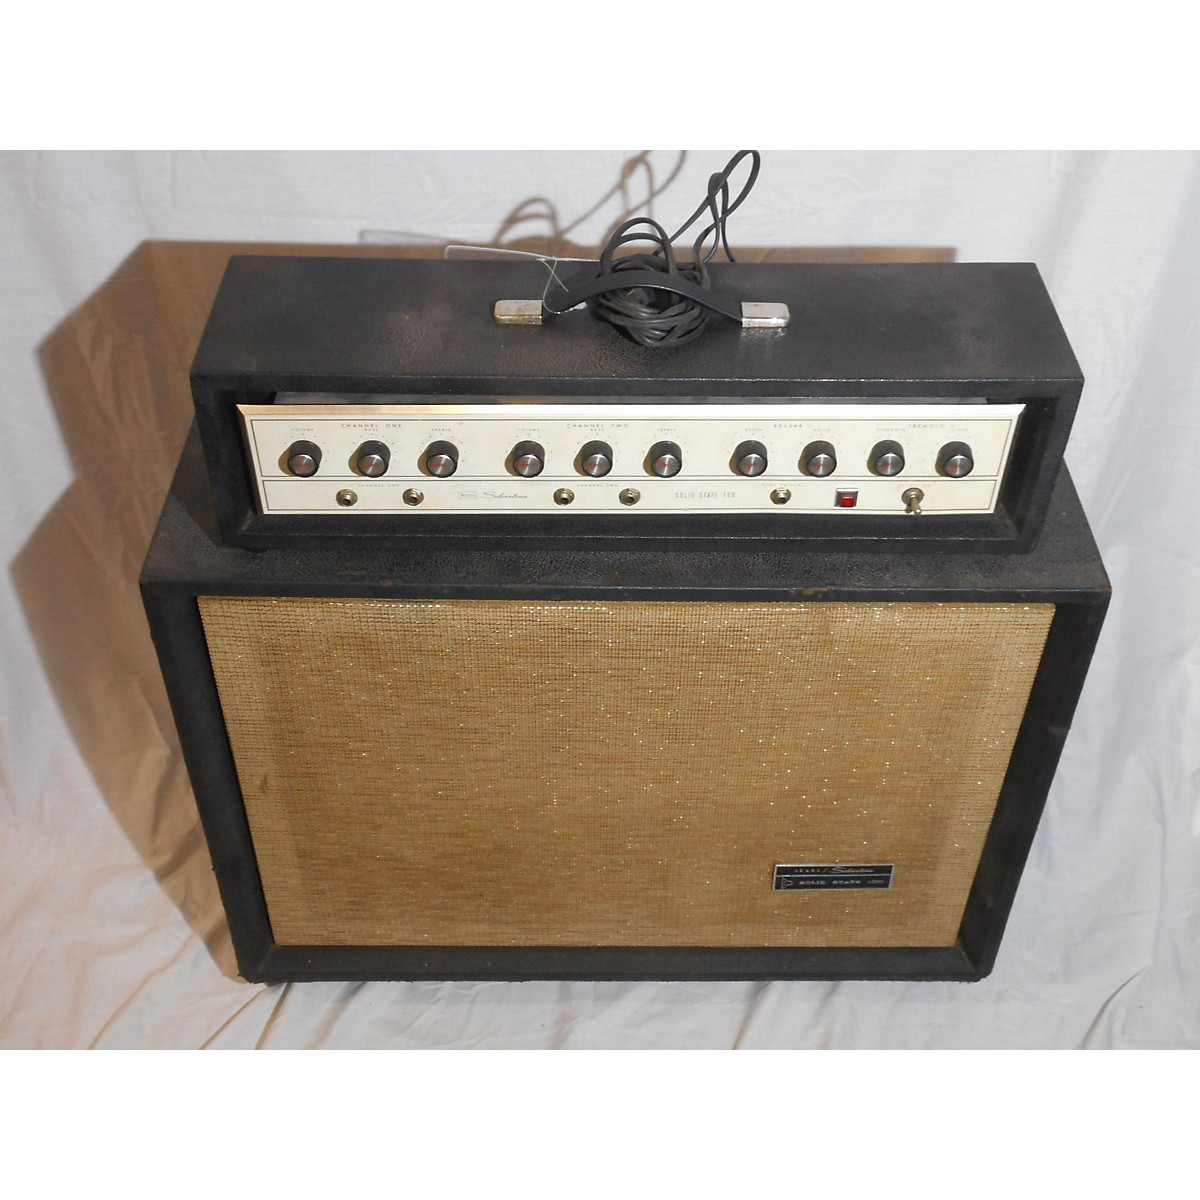 Silvertone 1967 1464 Solid State Amp W/ Cab Guitar Combo Amp